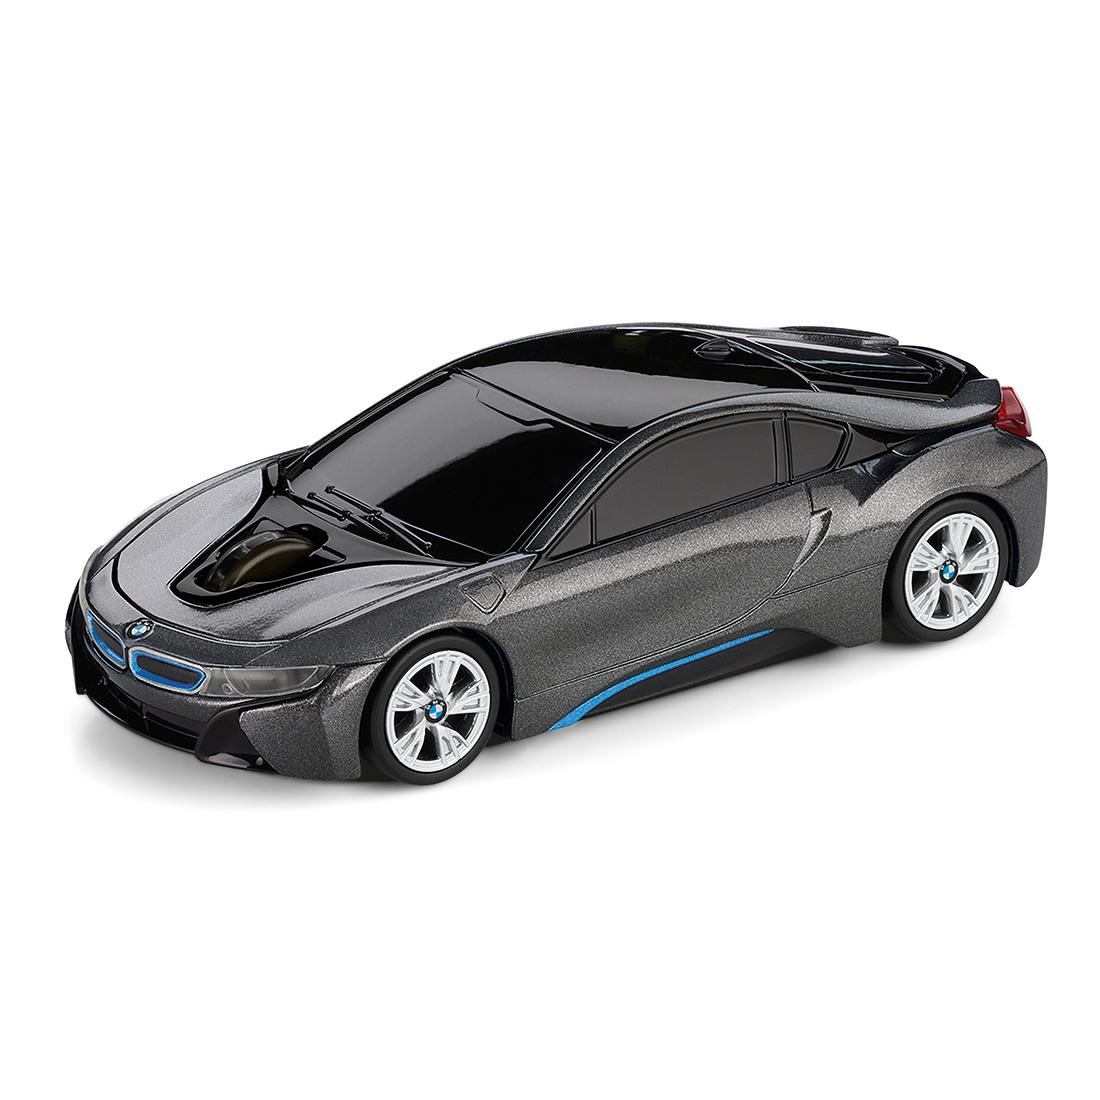 ShopBMWUSA.com: LIFESTYLE PRODUCTS: GIFTS